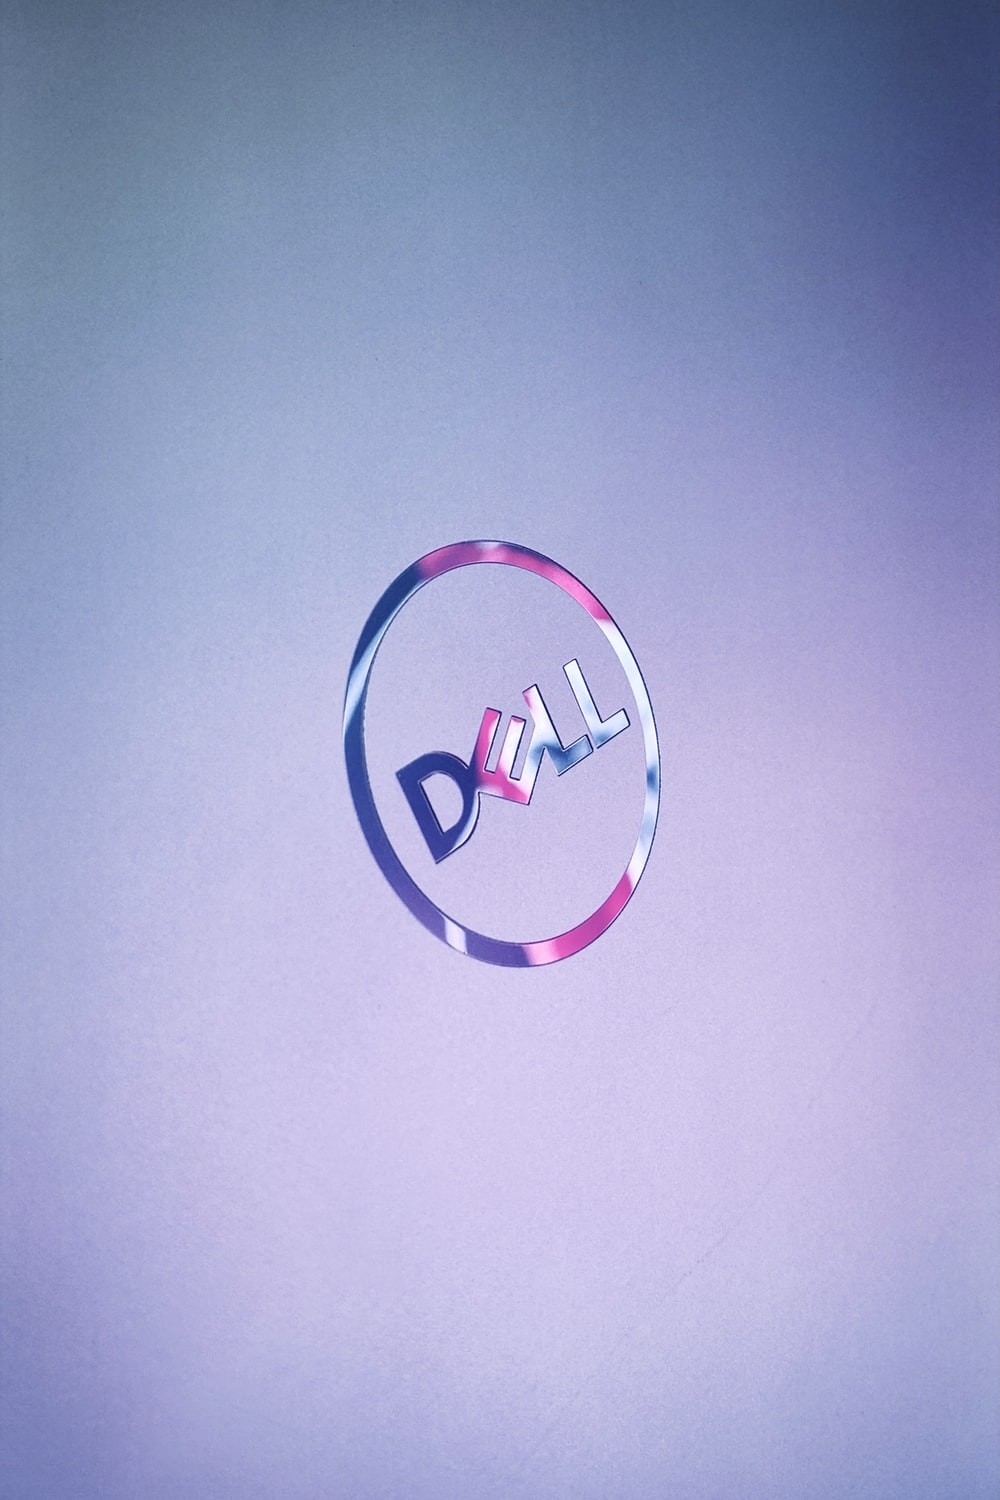 purple and white letter b logo